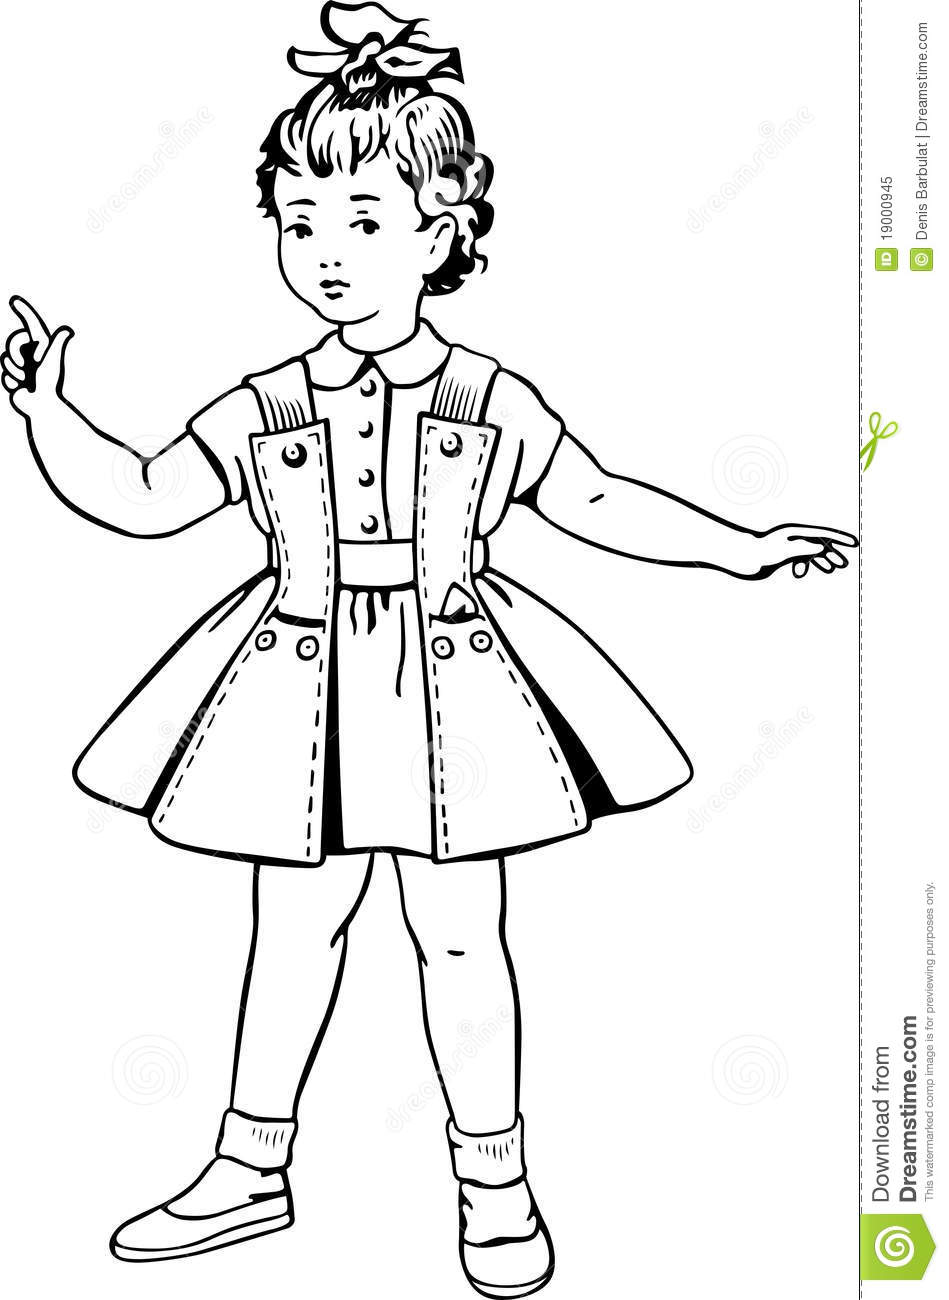 Little Girl In A Short Dress Royalty Free Stock Photo - Image 19000945